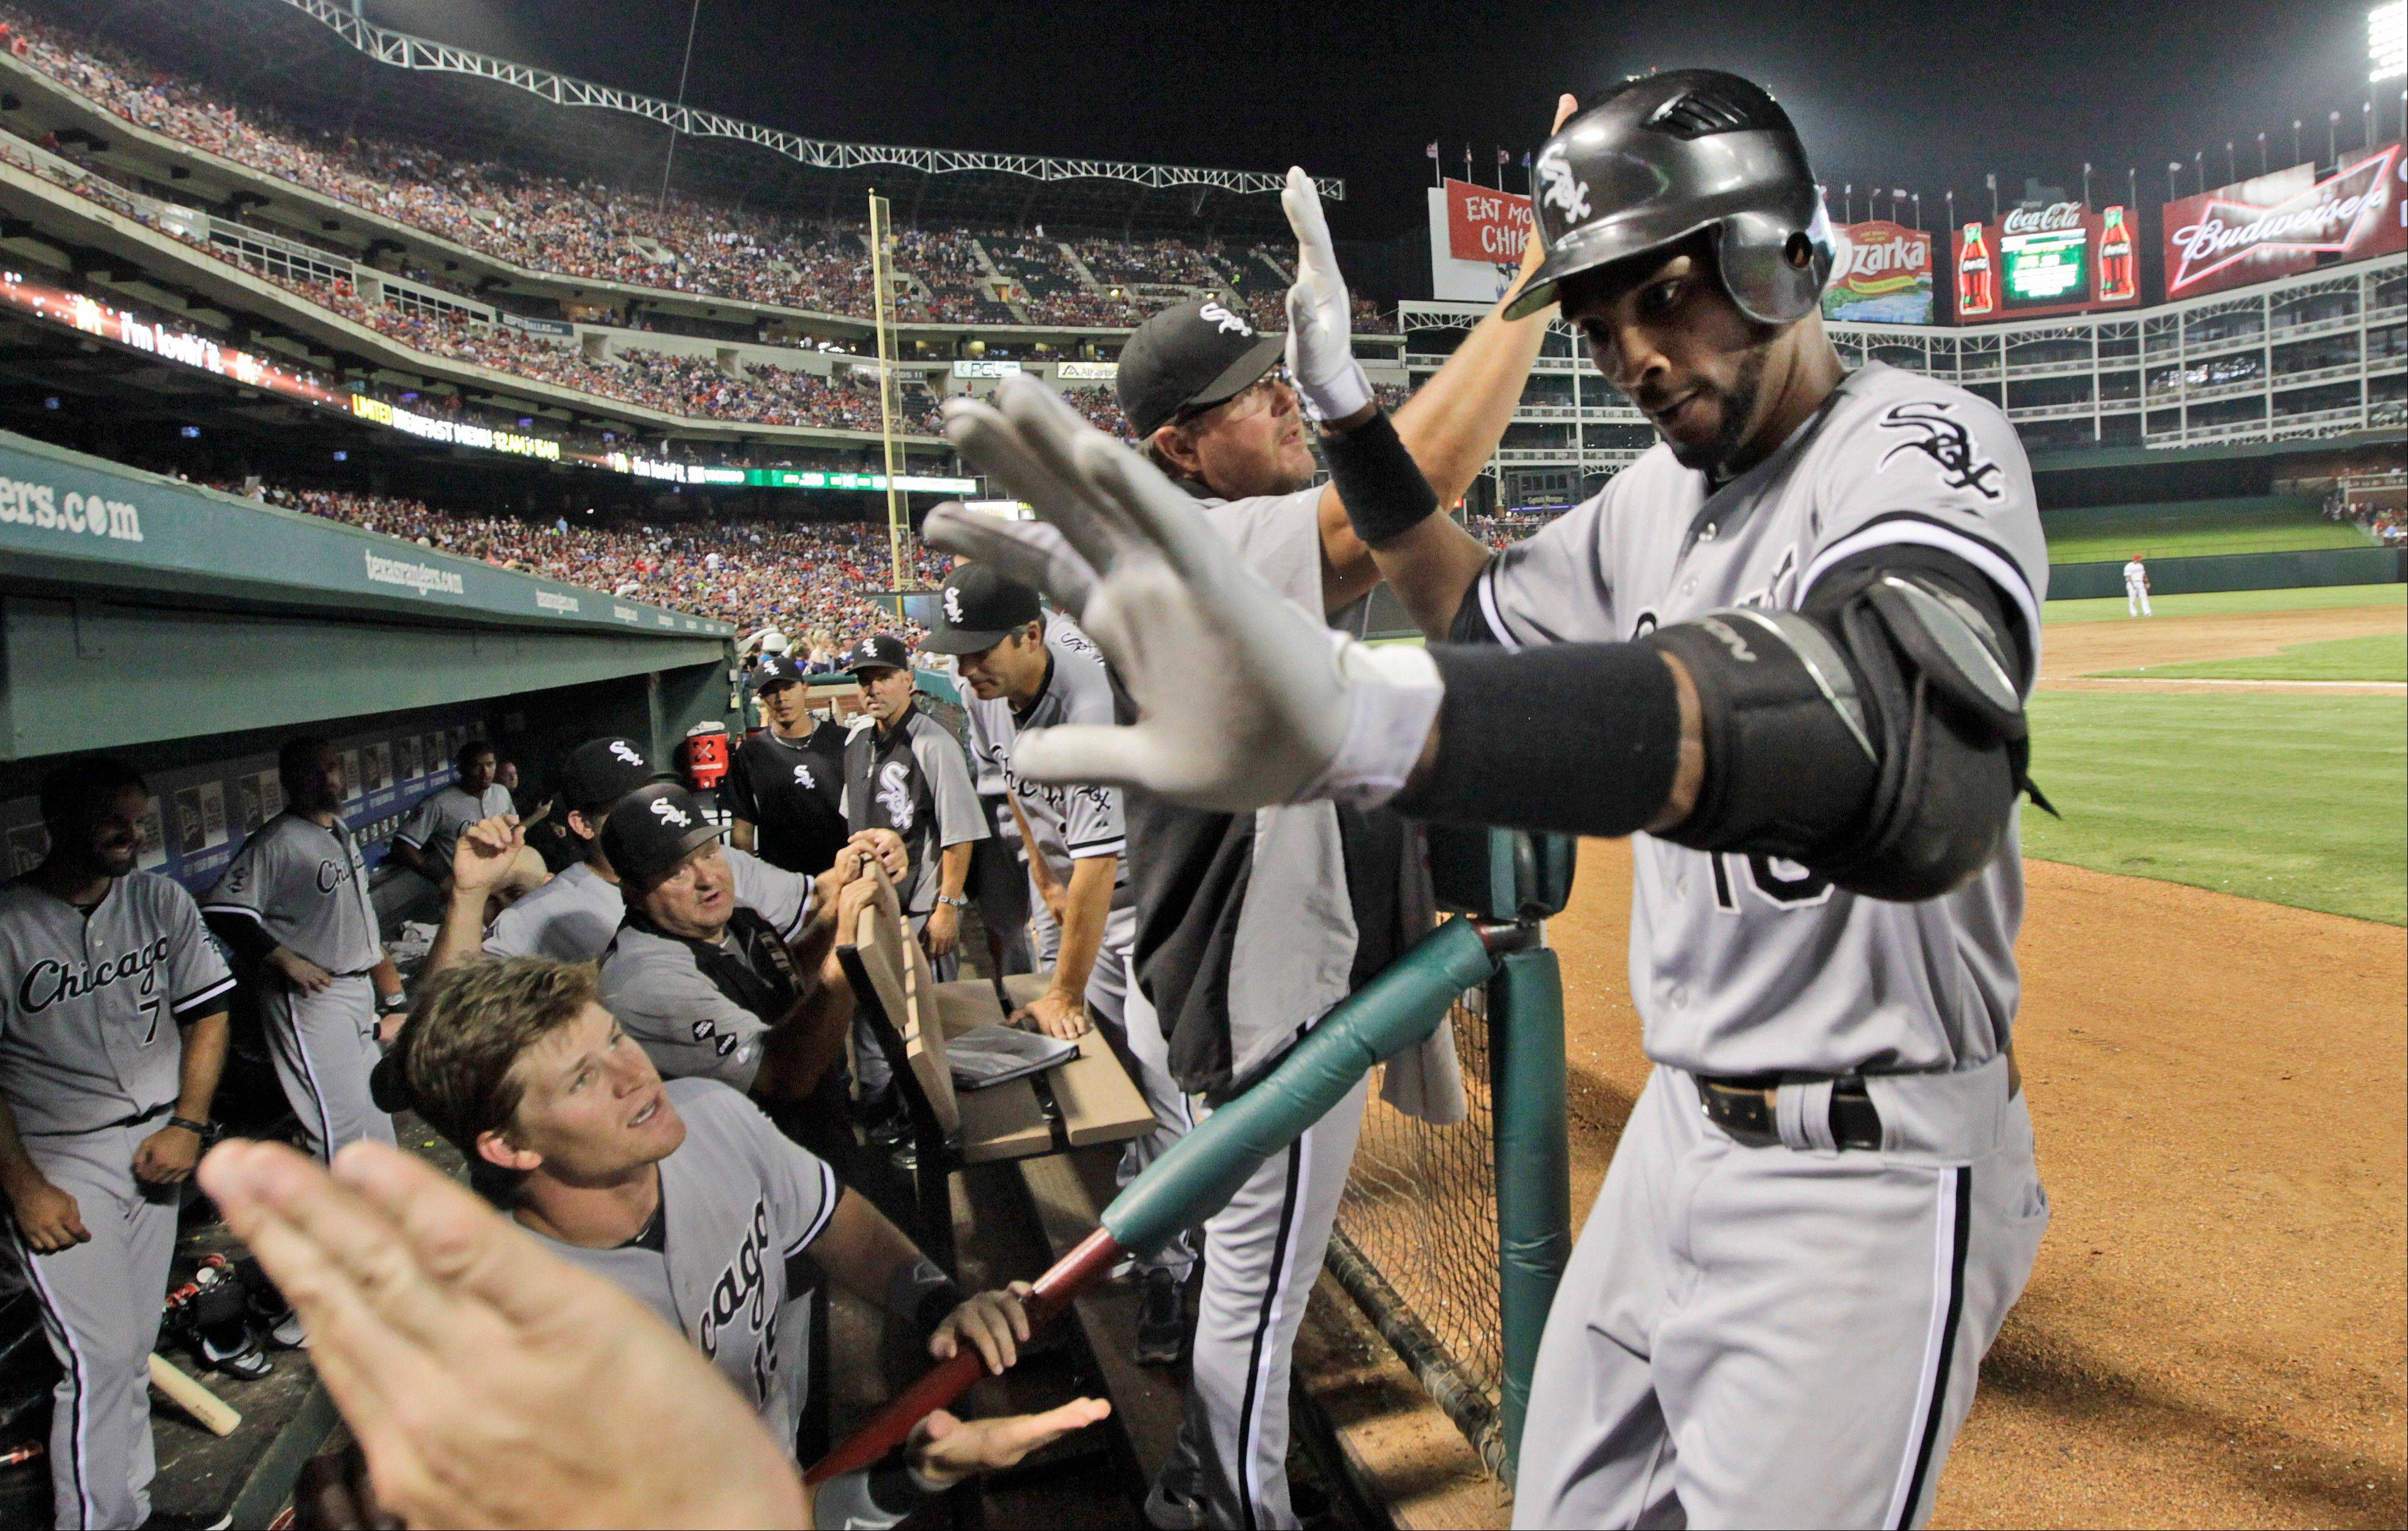 White Sox shortstop Alexei Ramirez, right, is greeted by teammates in the dugout Friday after hitting a 2-run home run during the ninth inning against the Texas Rangers. The White Sox won 9-5.